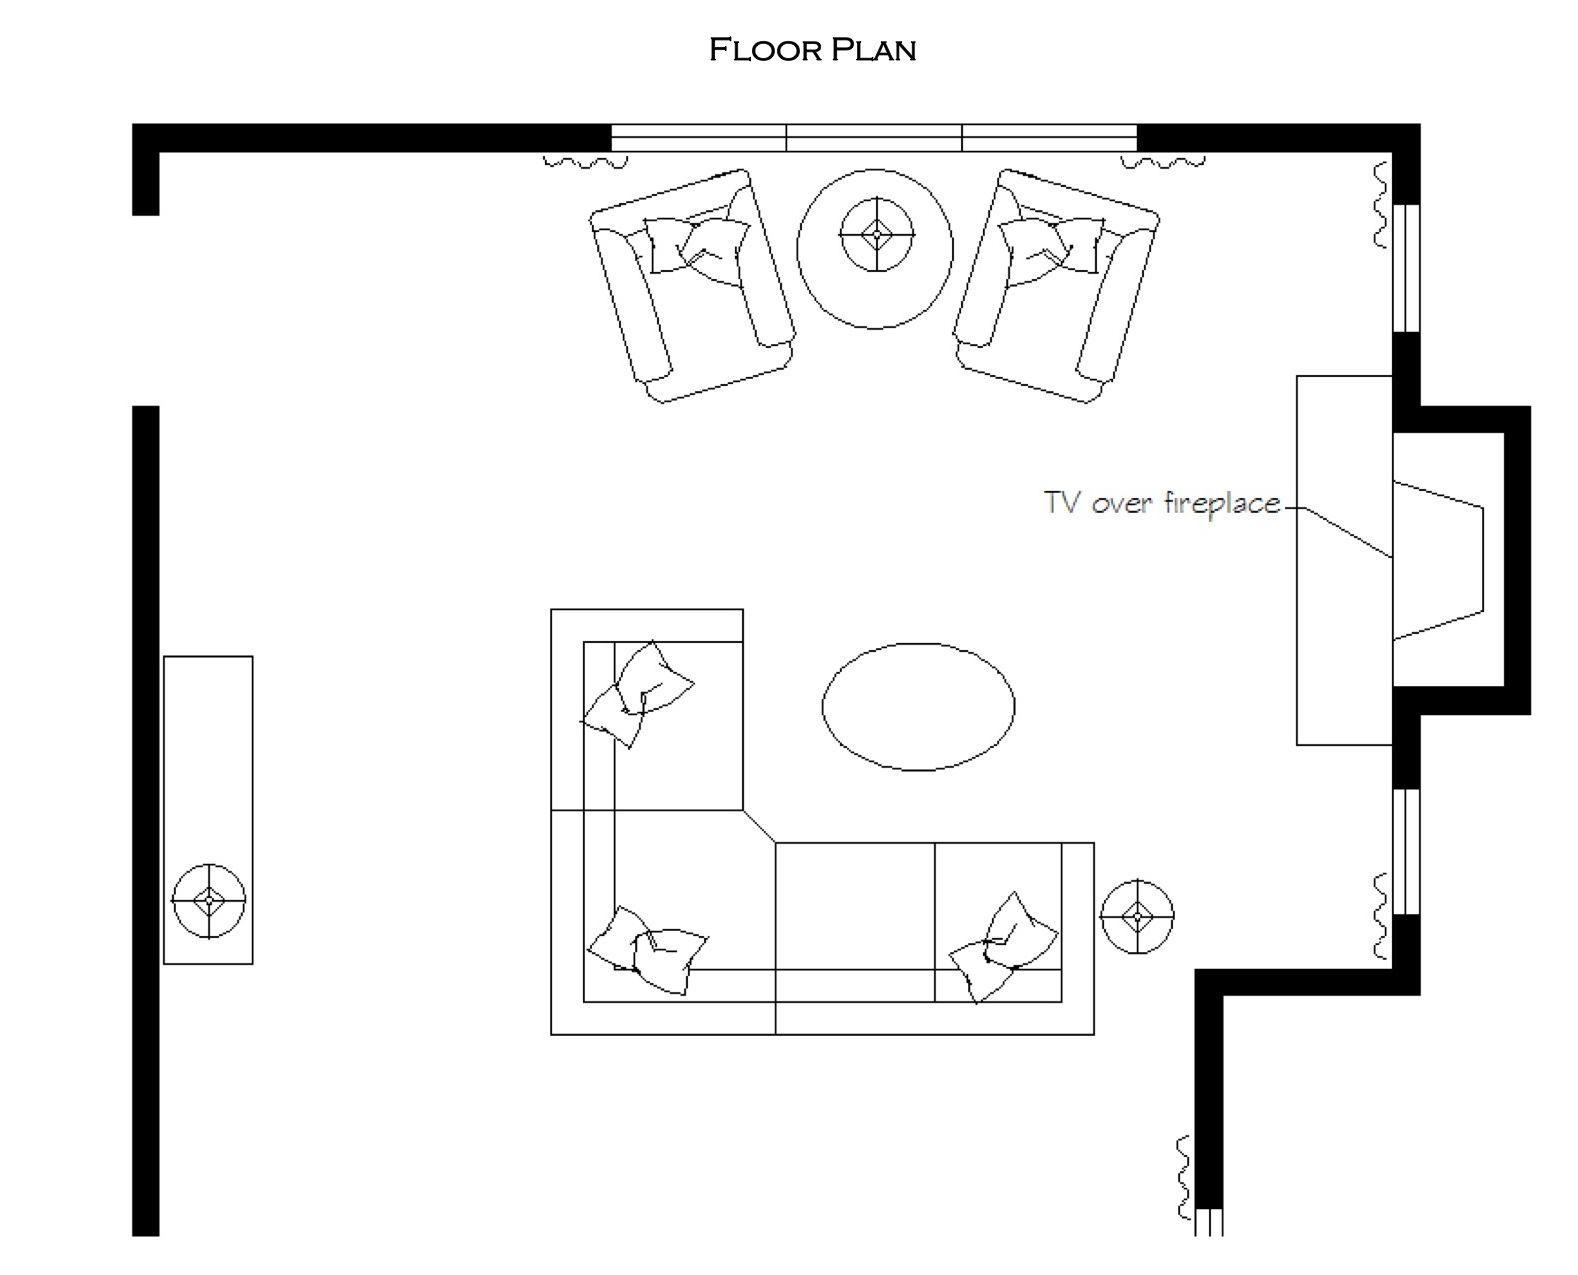 Living room floor plan sectional tv over fireplace for Plan my room layout